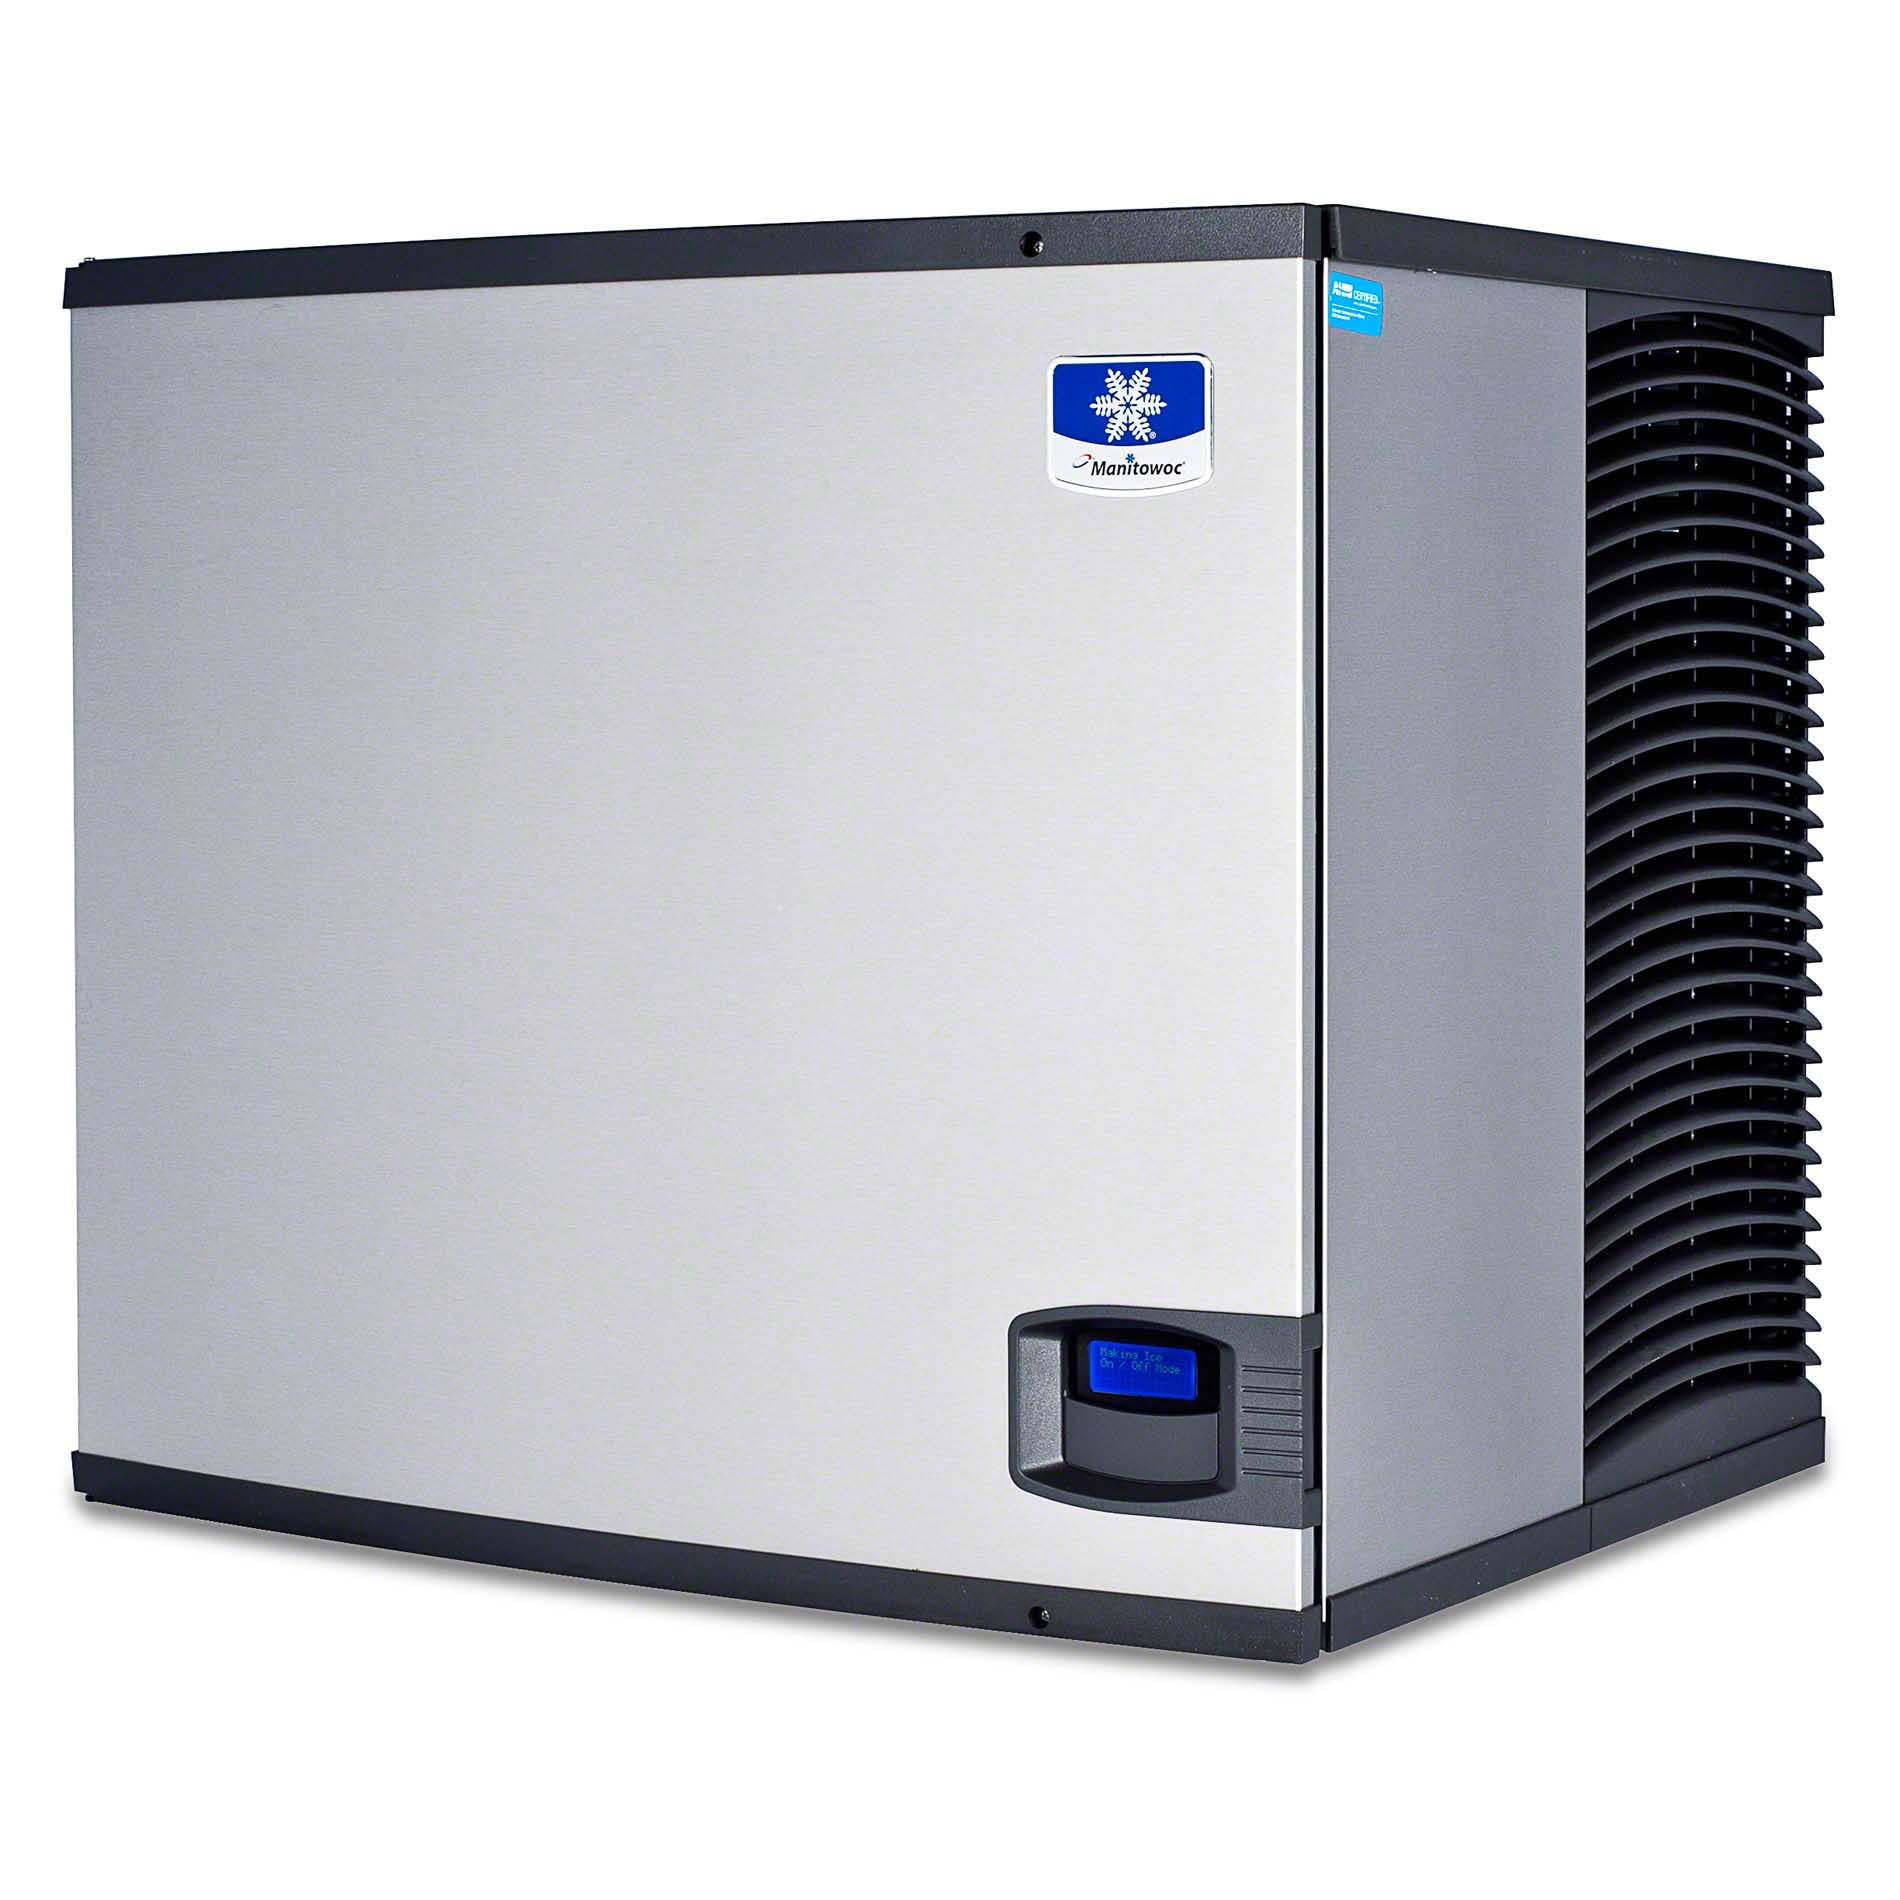 Manitowoc - ID-1003W 1000 lb Full Size Cube Ice Machine - Indigo Series - sold by Food Service Warehouse